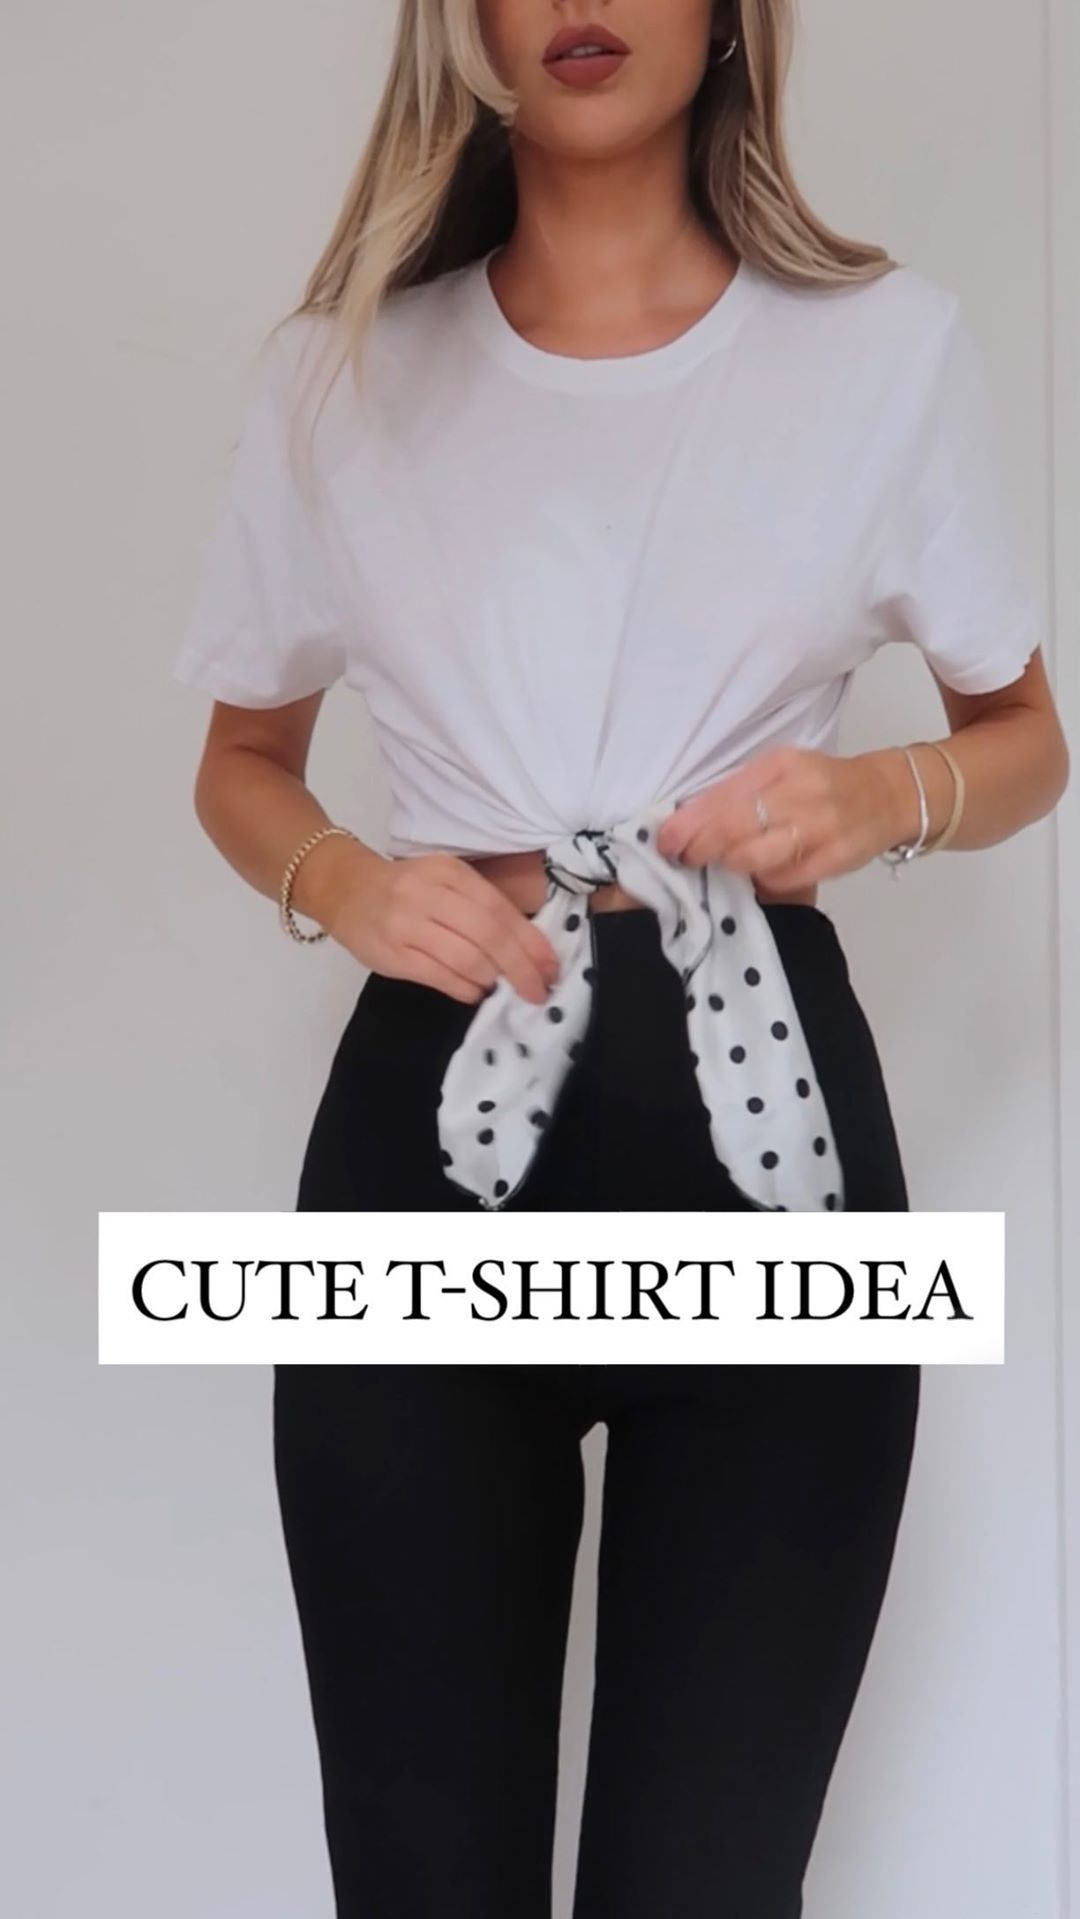 """Lydia Rose on Instagram: """"Style hack - cute tee idea 🖤🖤 • #waystowear #whitetshirt #outfit"""""""